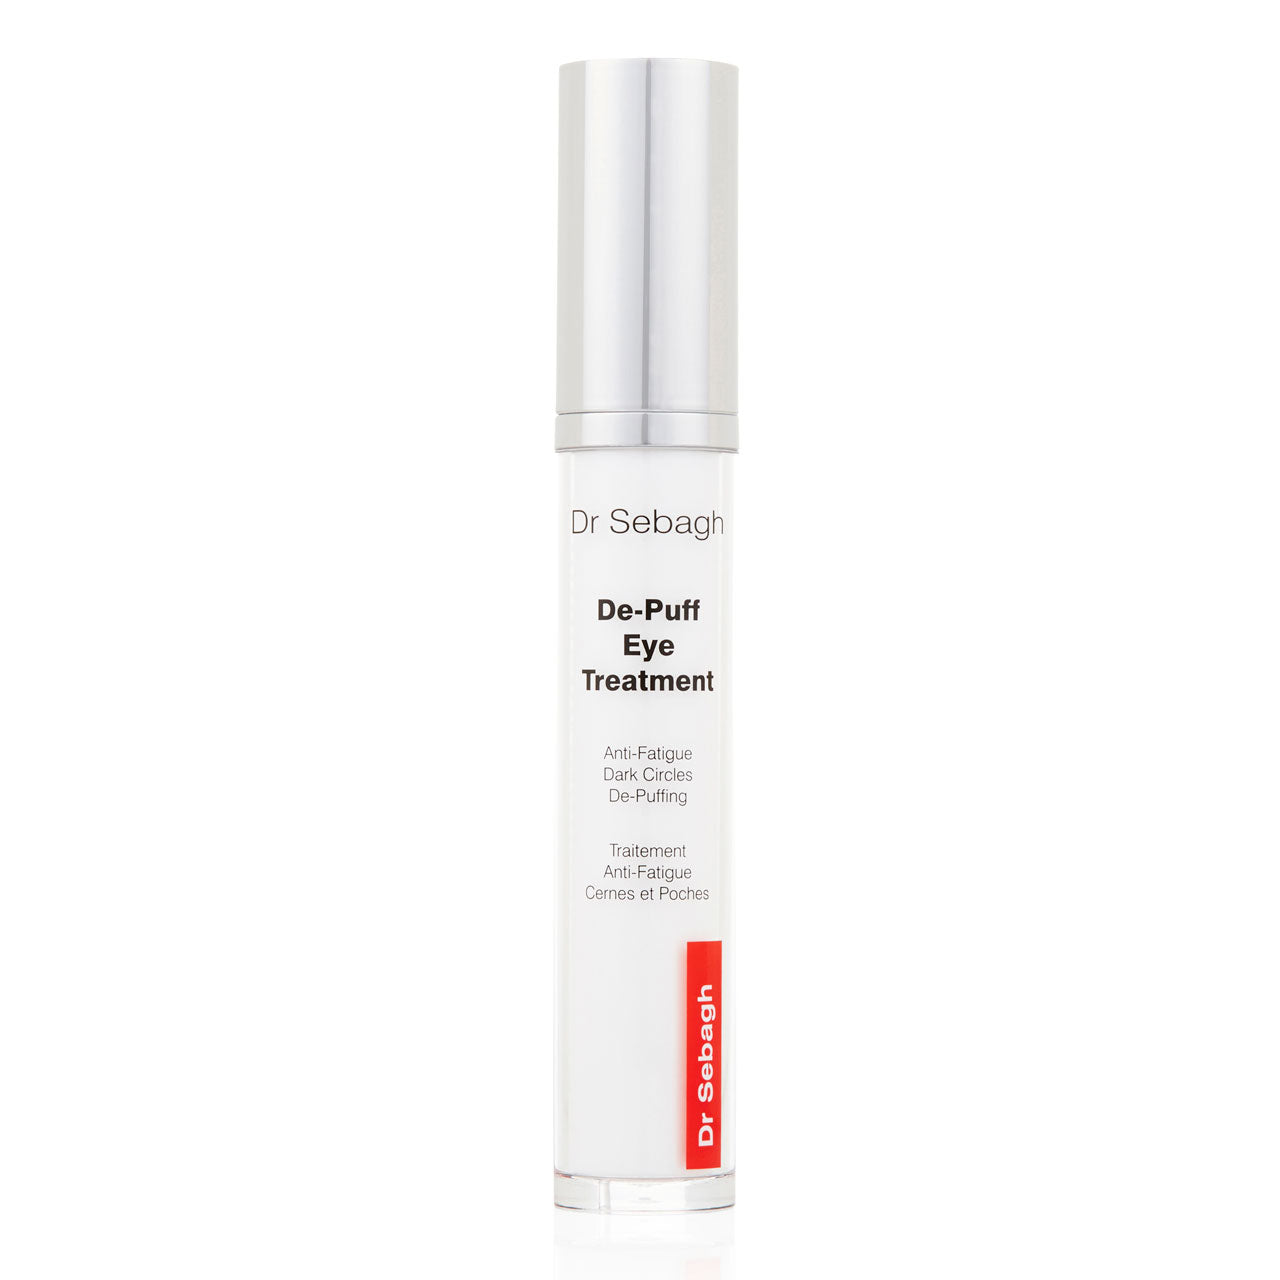 DR. SEBAGH - De-Puff Eye Treatment